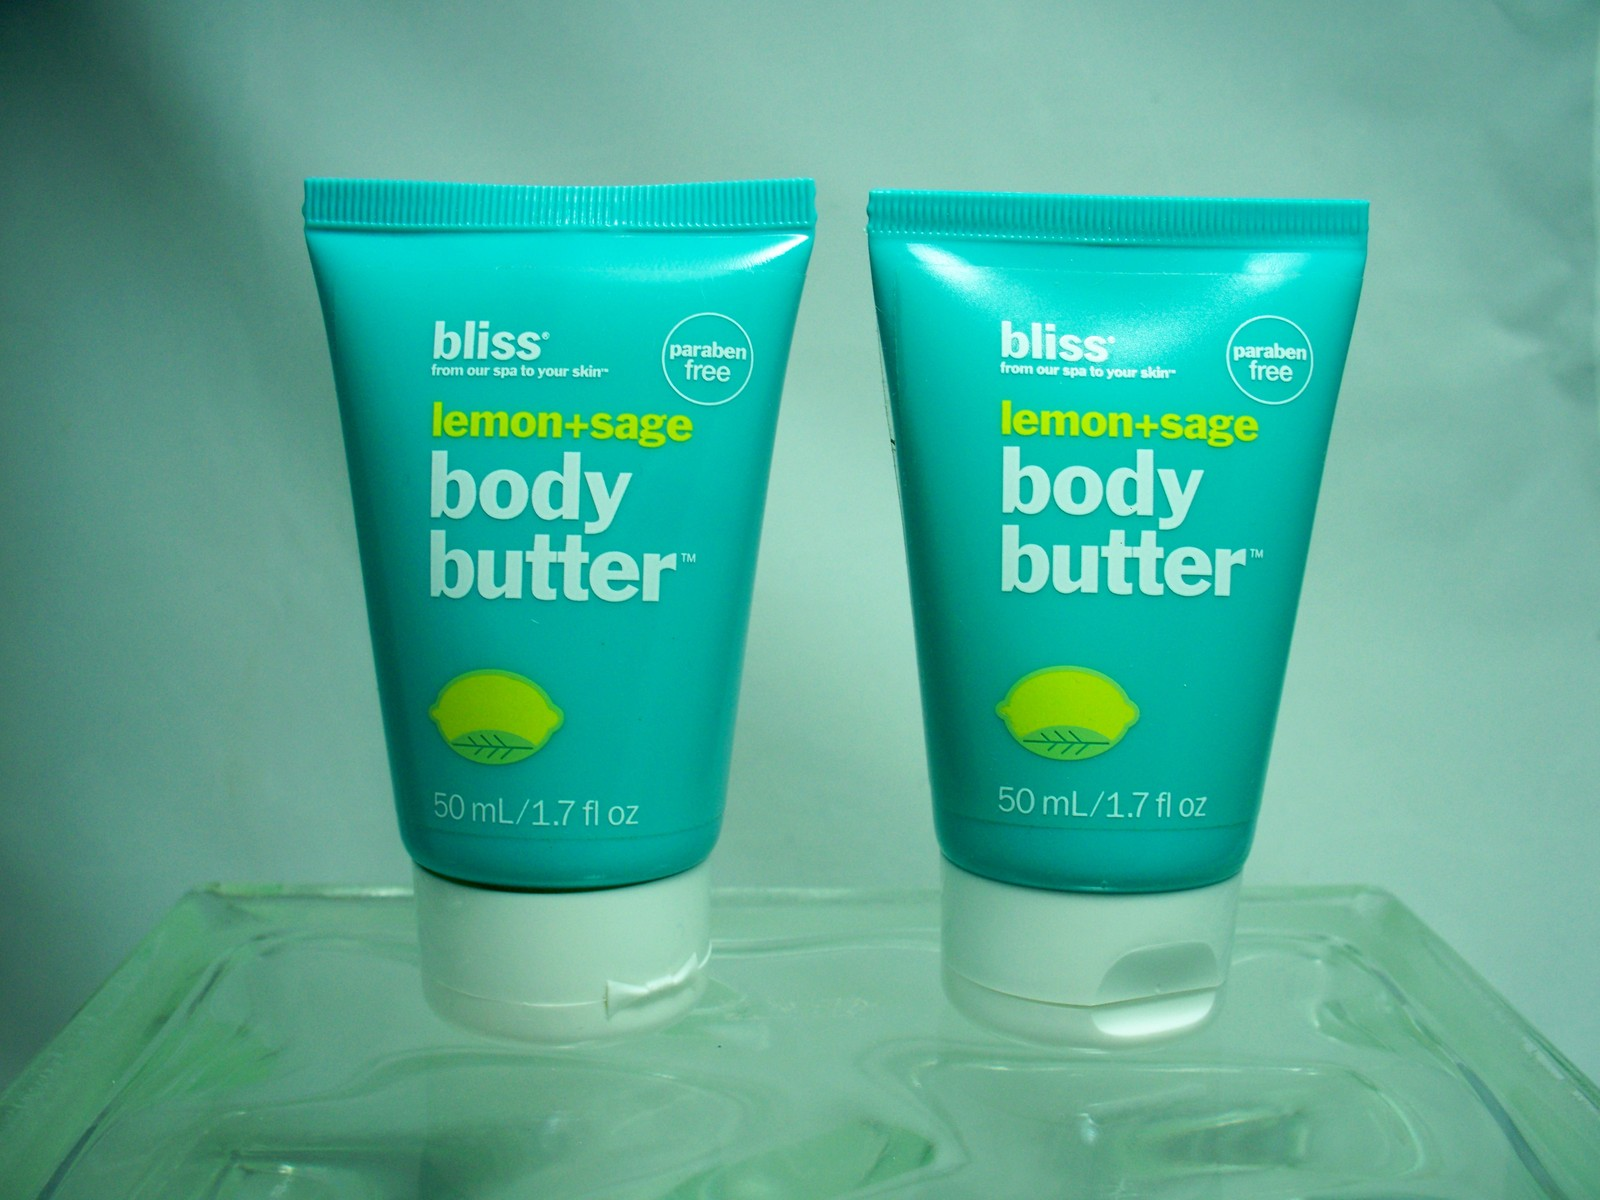 Primary image for Bliss body butter with lemon + sage  2 ea  New 1.7 oz  (sealed)